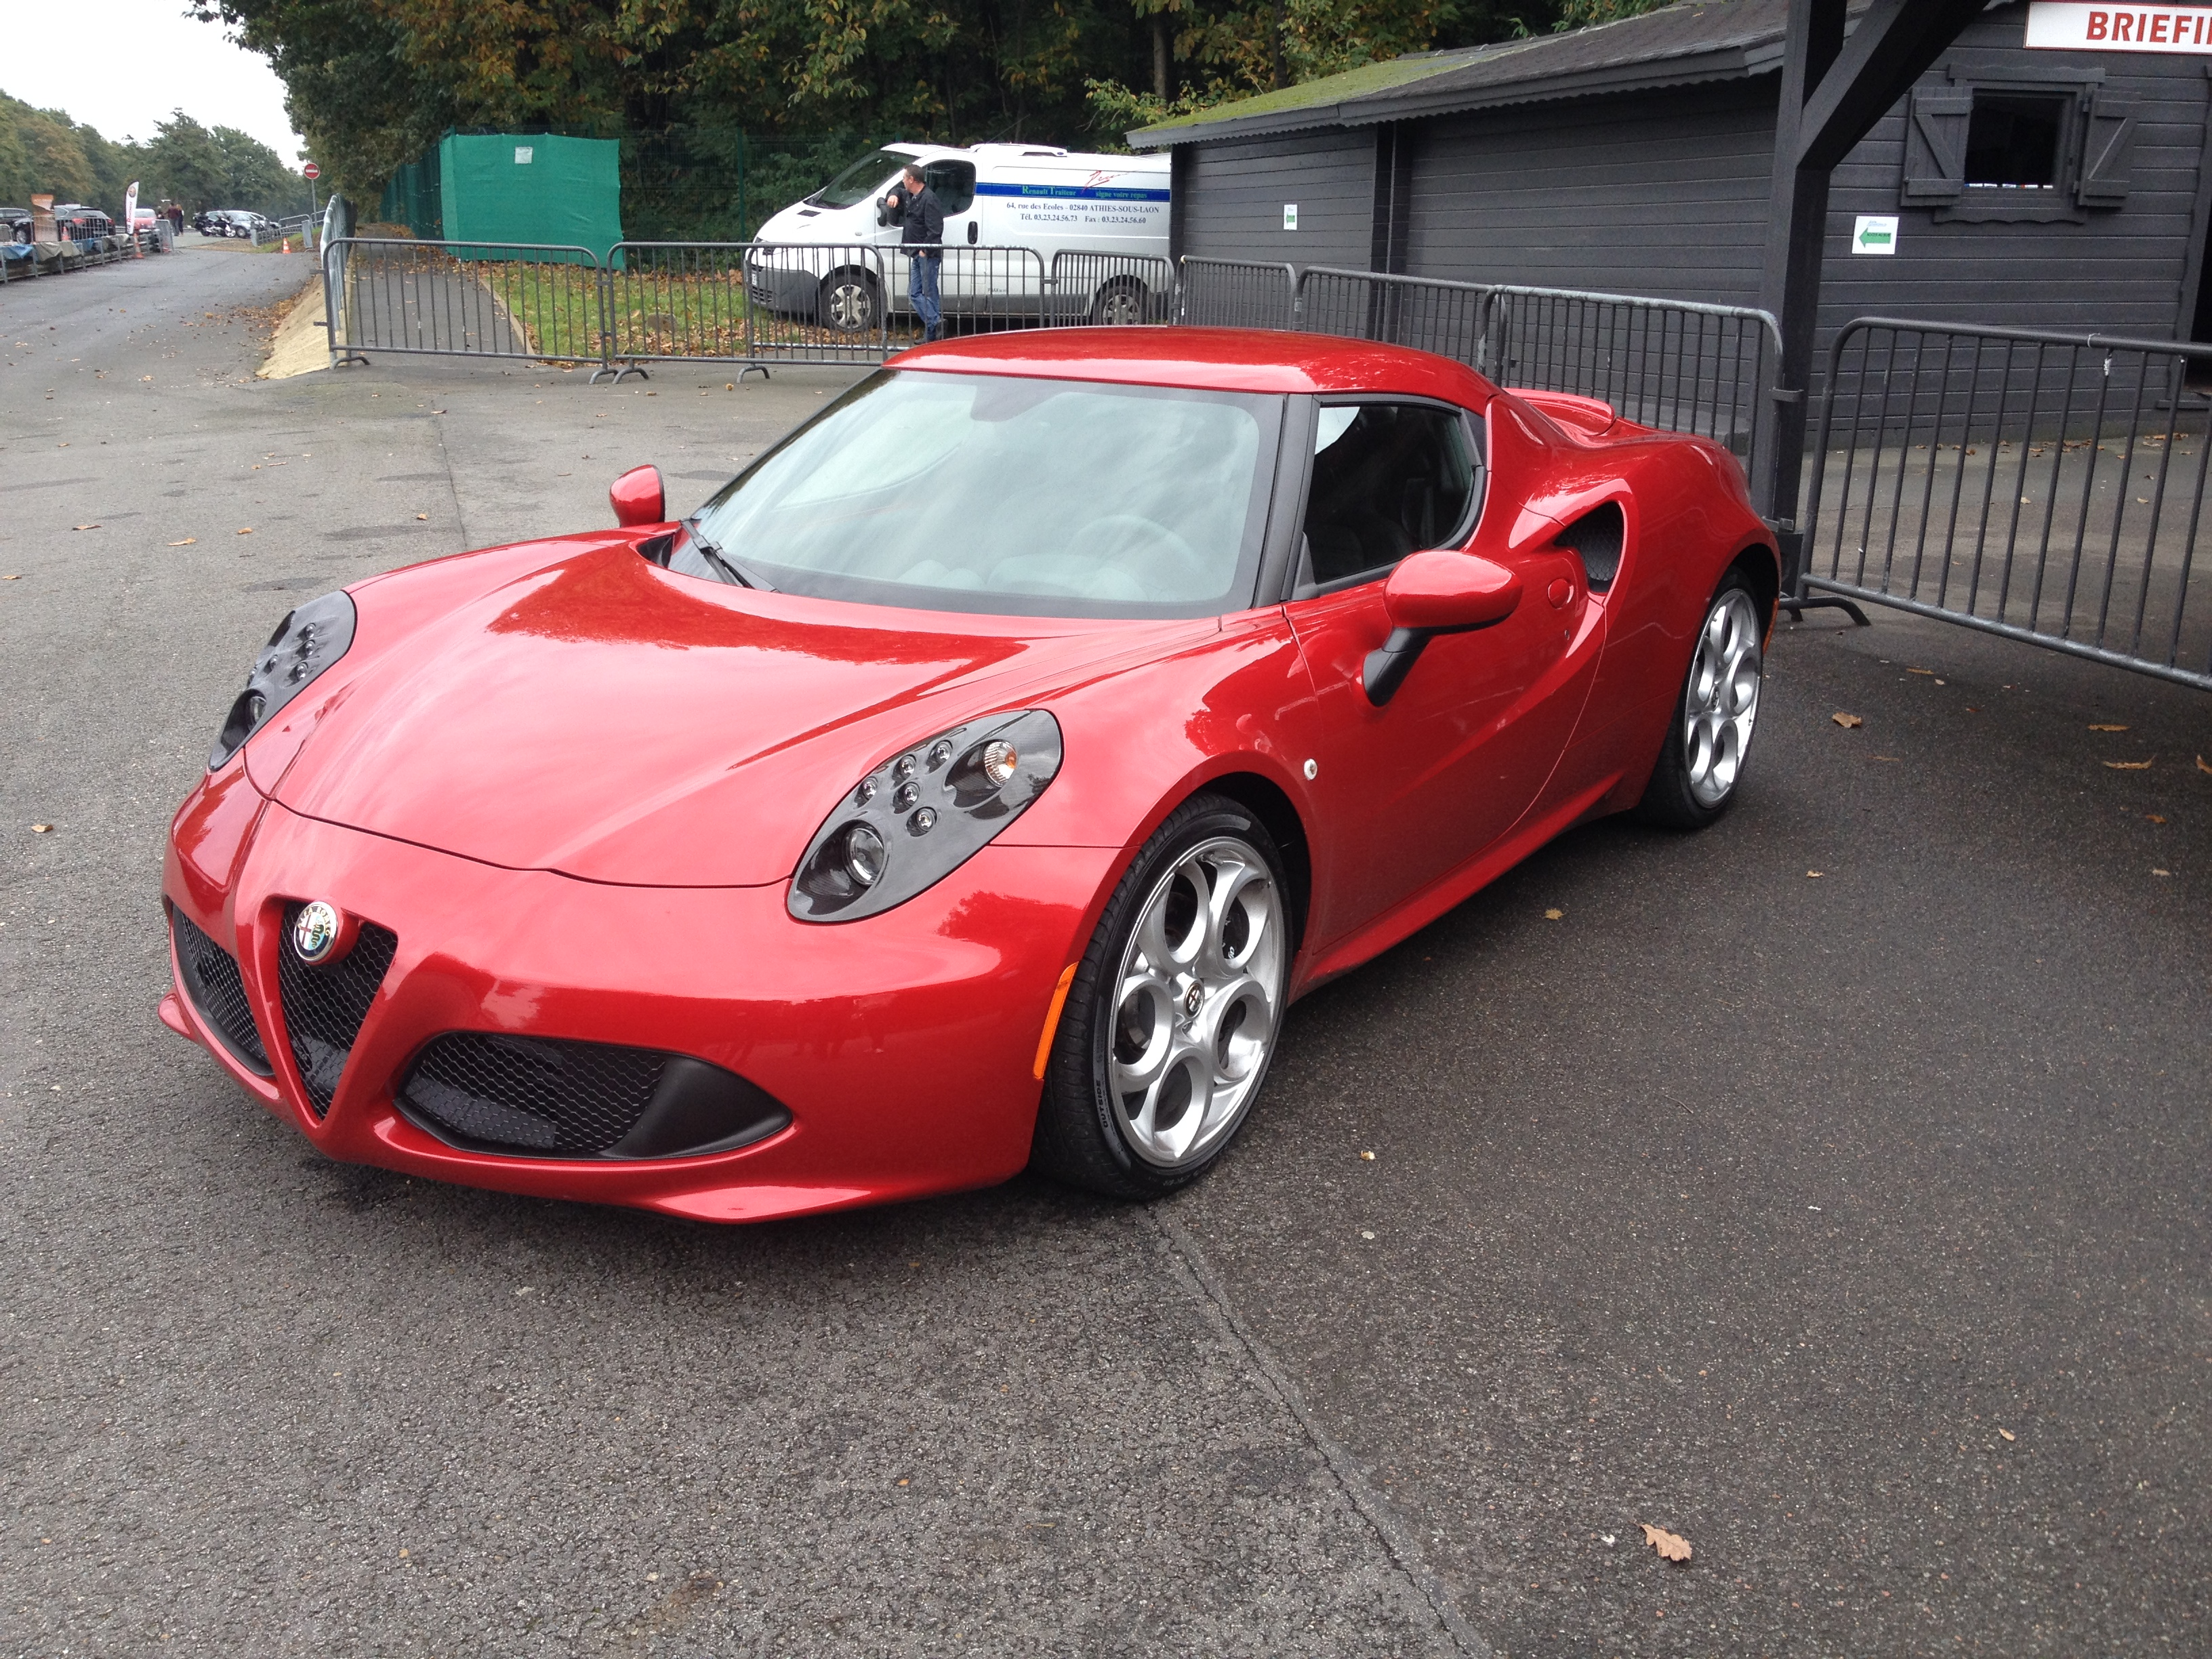 essai circuit alfa romeo 4c auto lifestyle. Black Bedroom Furniture Sets. Home Design Ideas